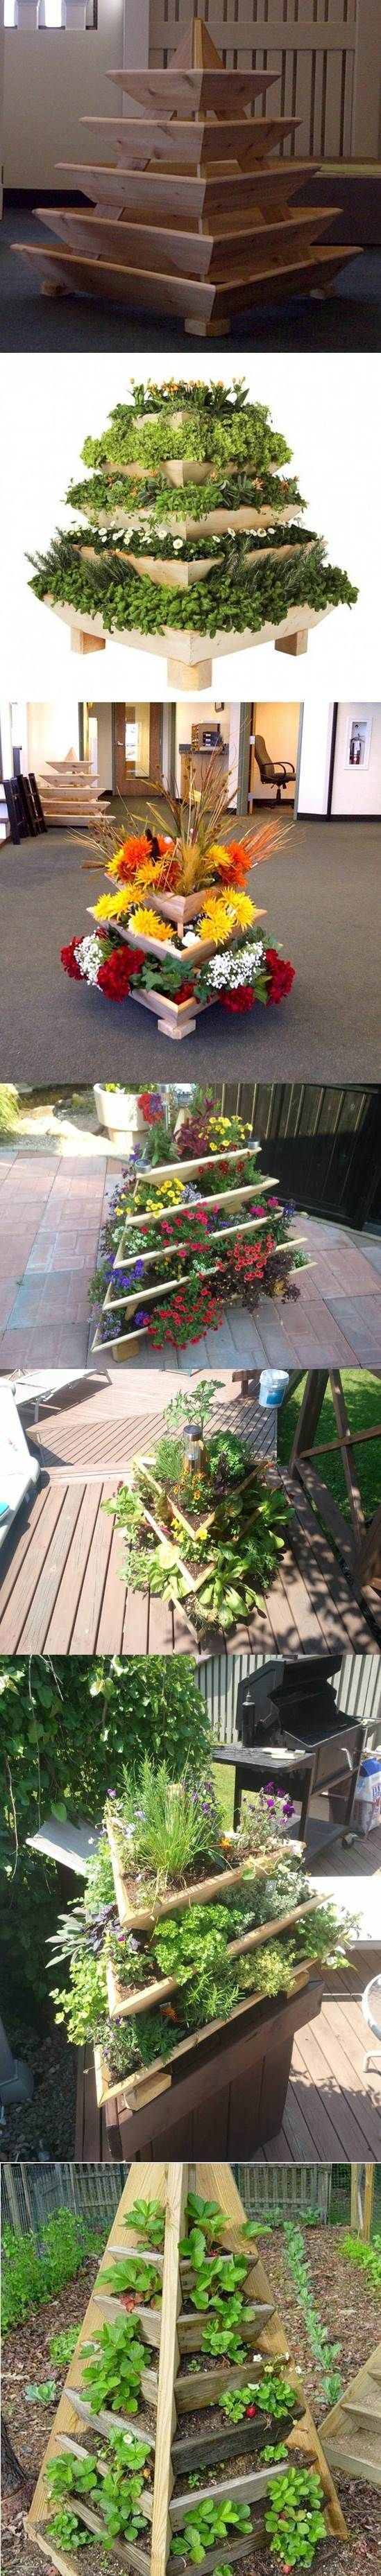 creative idea of home gardening triolife plant pyramid plant pyramid pinterest garten. Black Bedroom Furniture Sets. Home Design Ideas